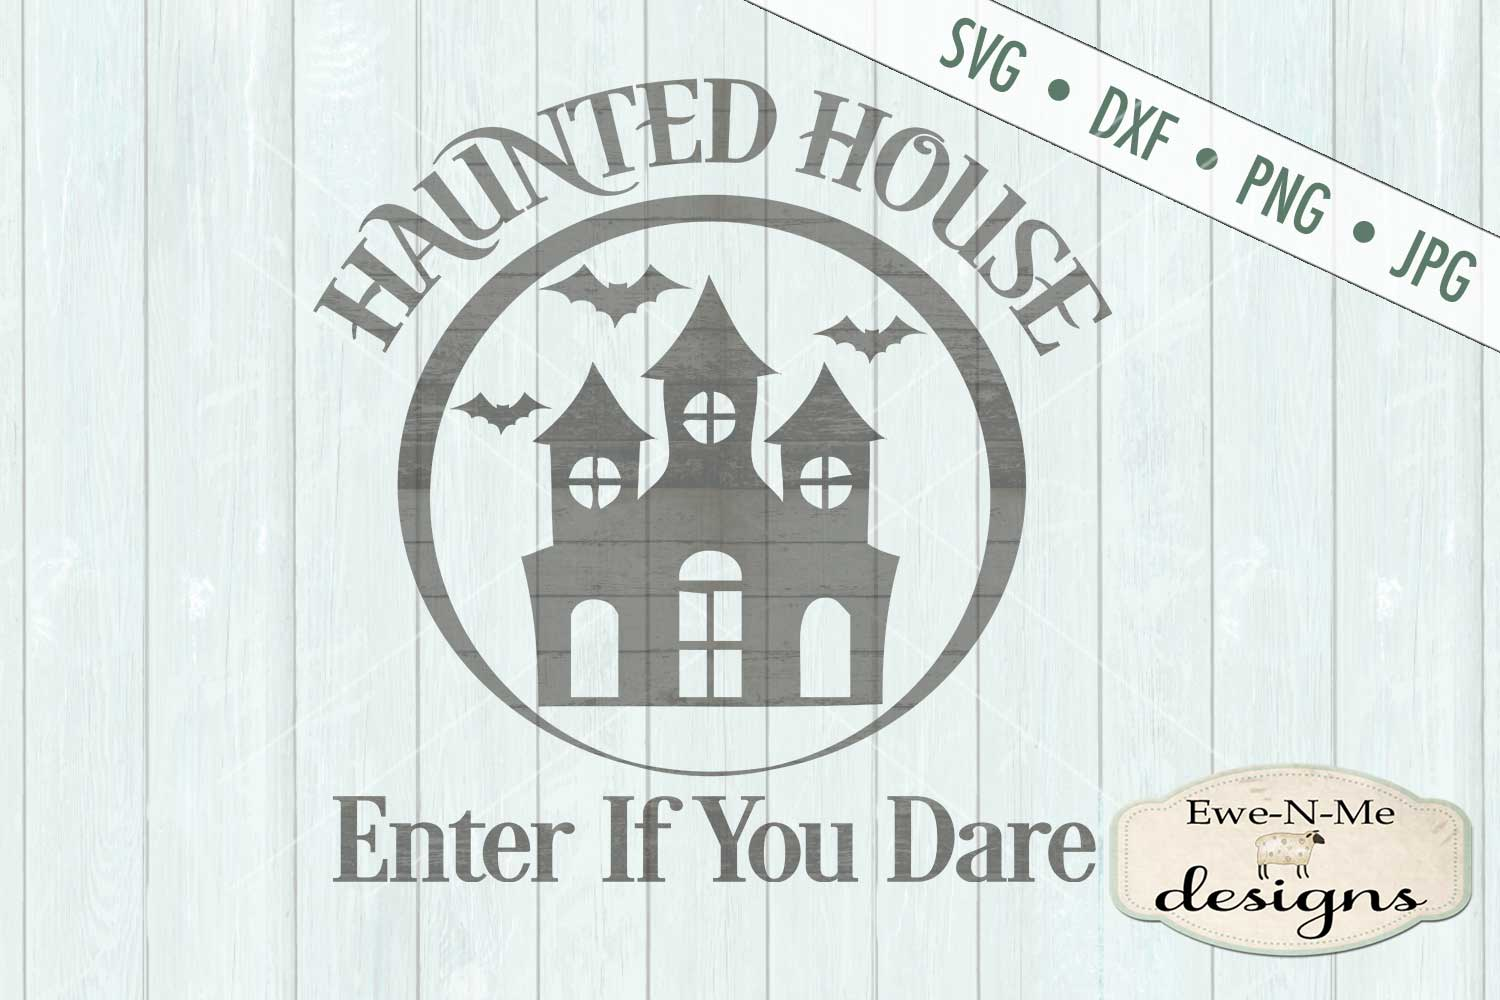 Haunted House Enter If You Dare SVG DXF Files example image 2